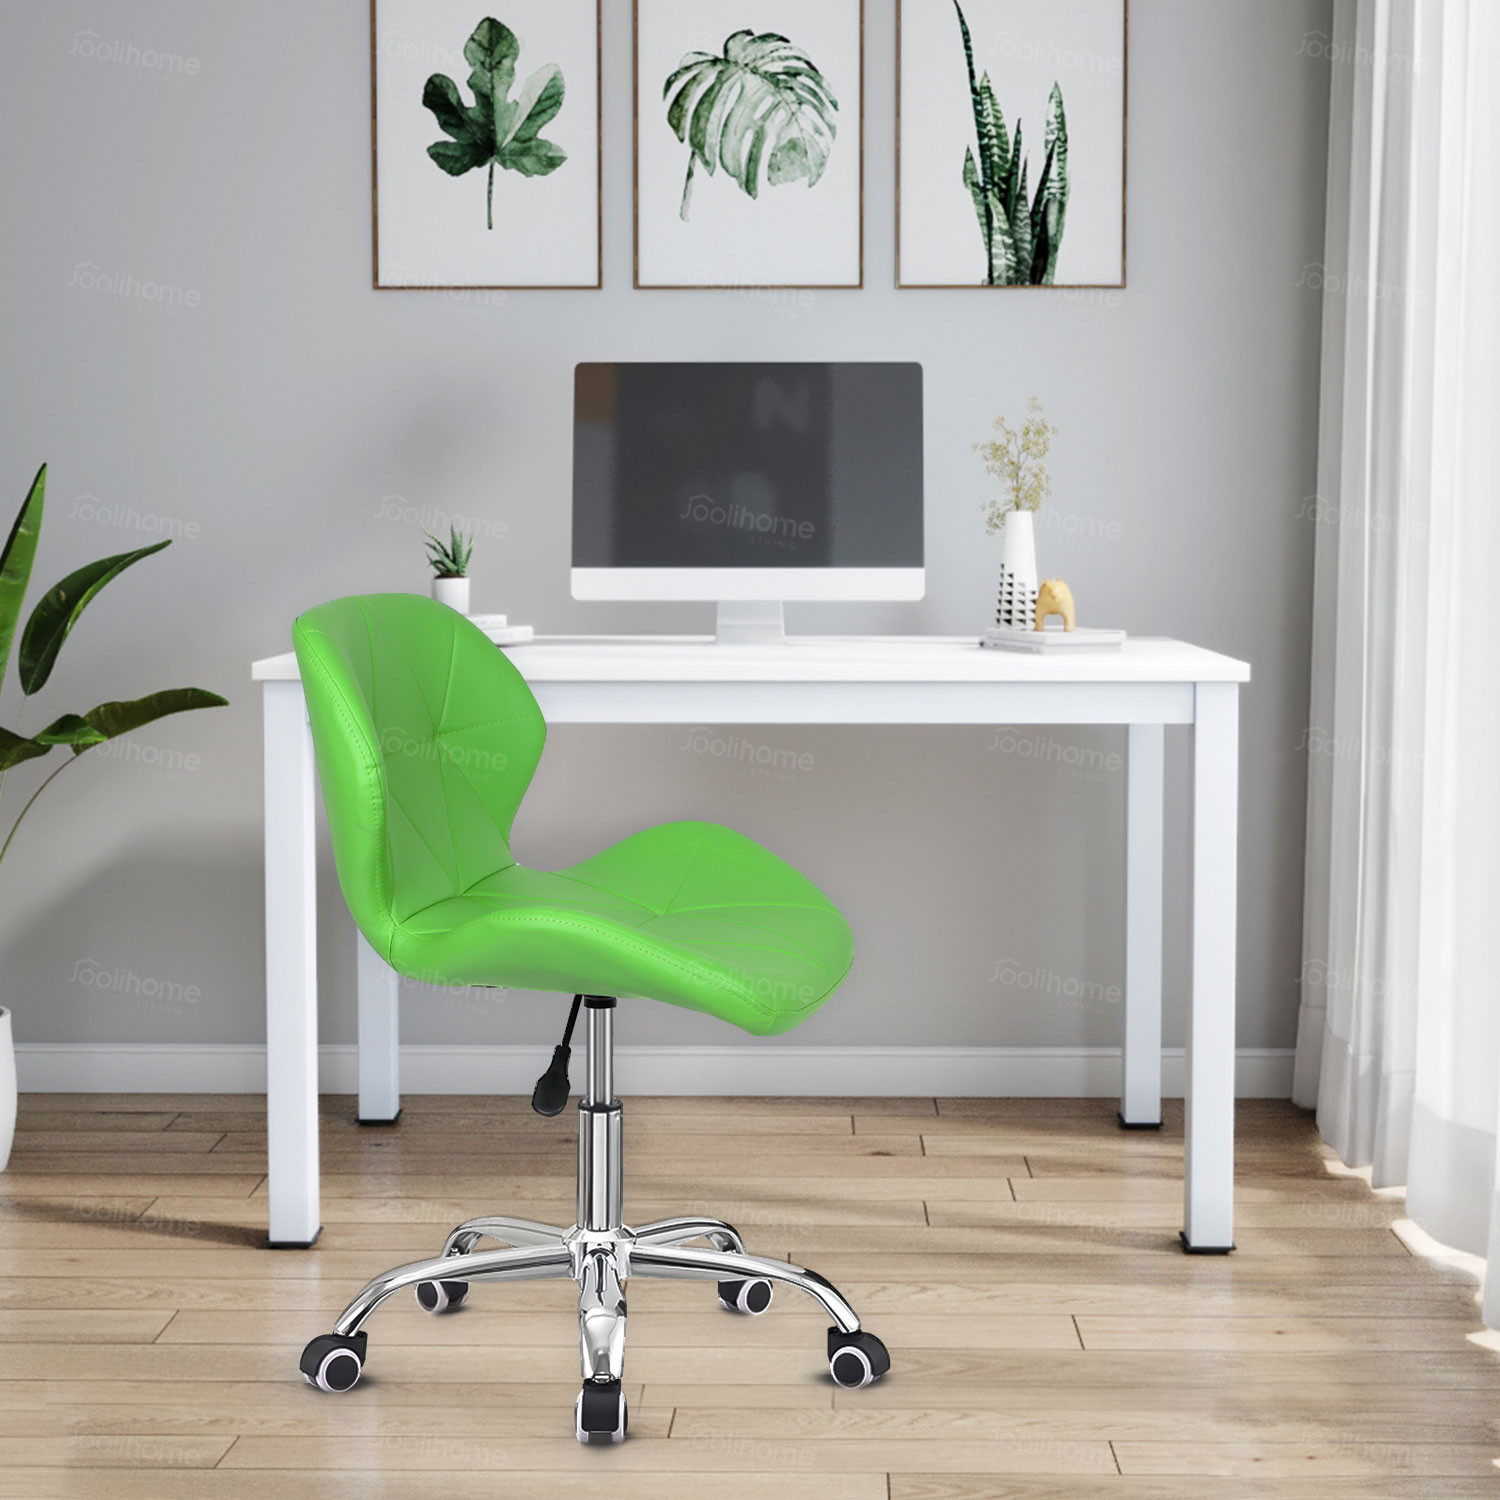 Swivel Furniture Computer Desk Office Chair PU Leather Adjustable Desk Chairs